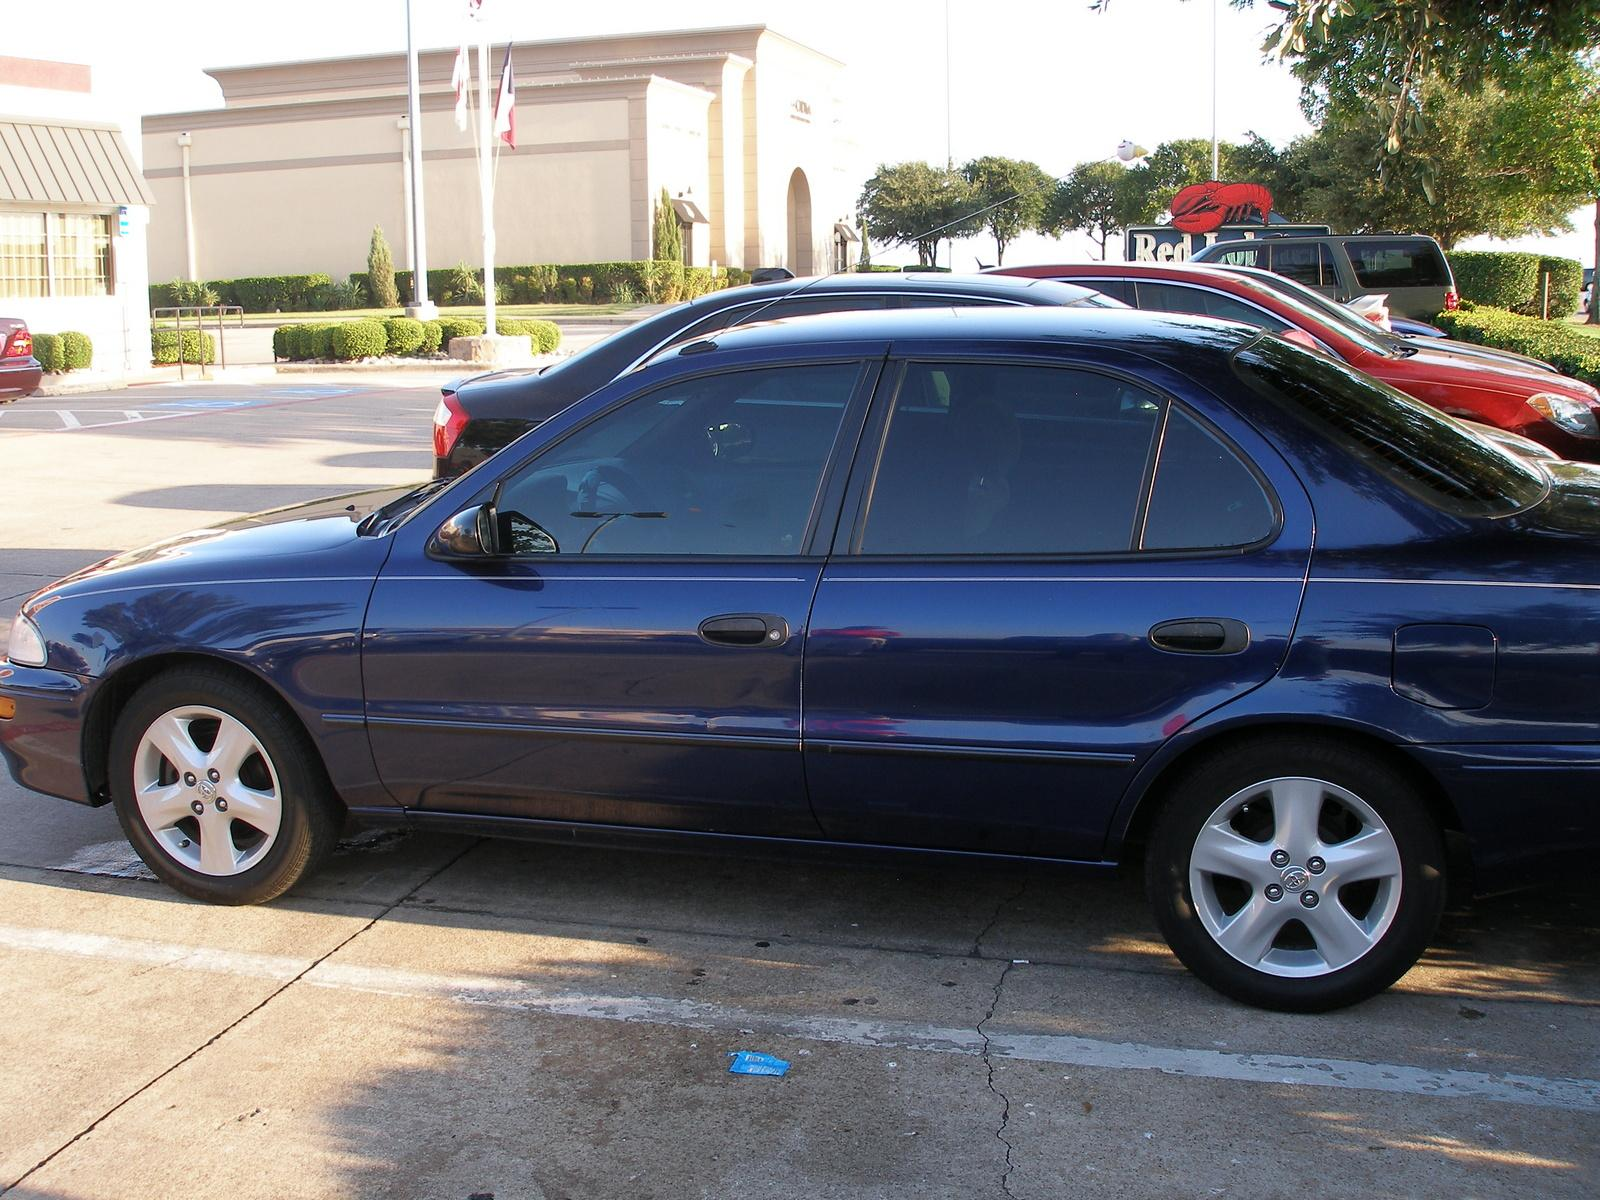 hight resolution of 800 1024 1280 1600 origin 1997 geo prizm